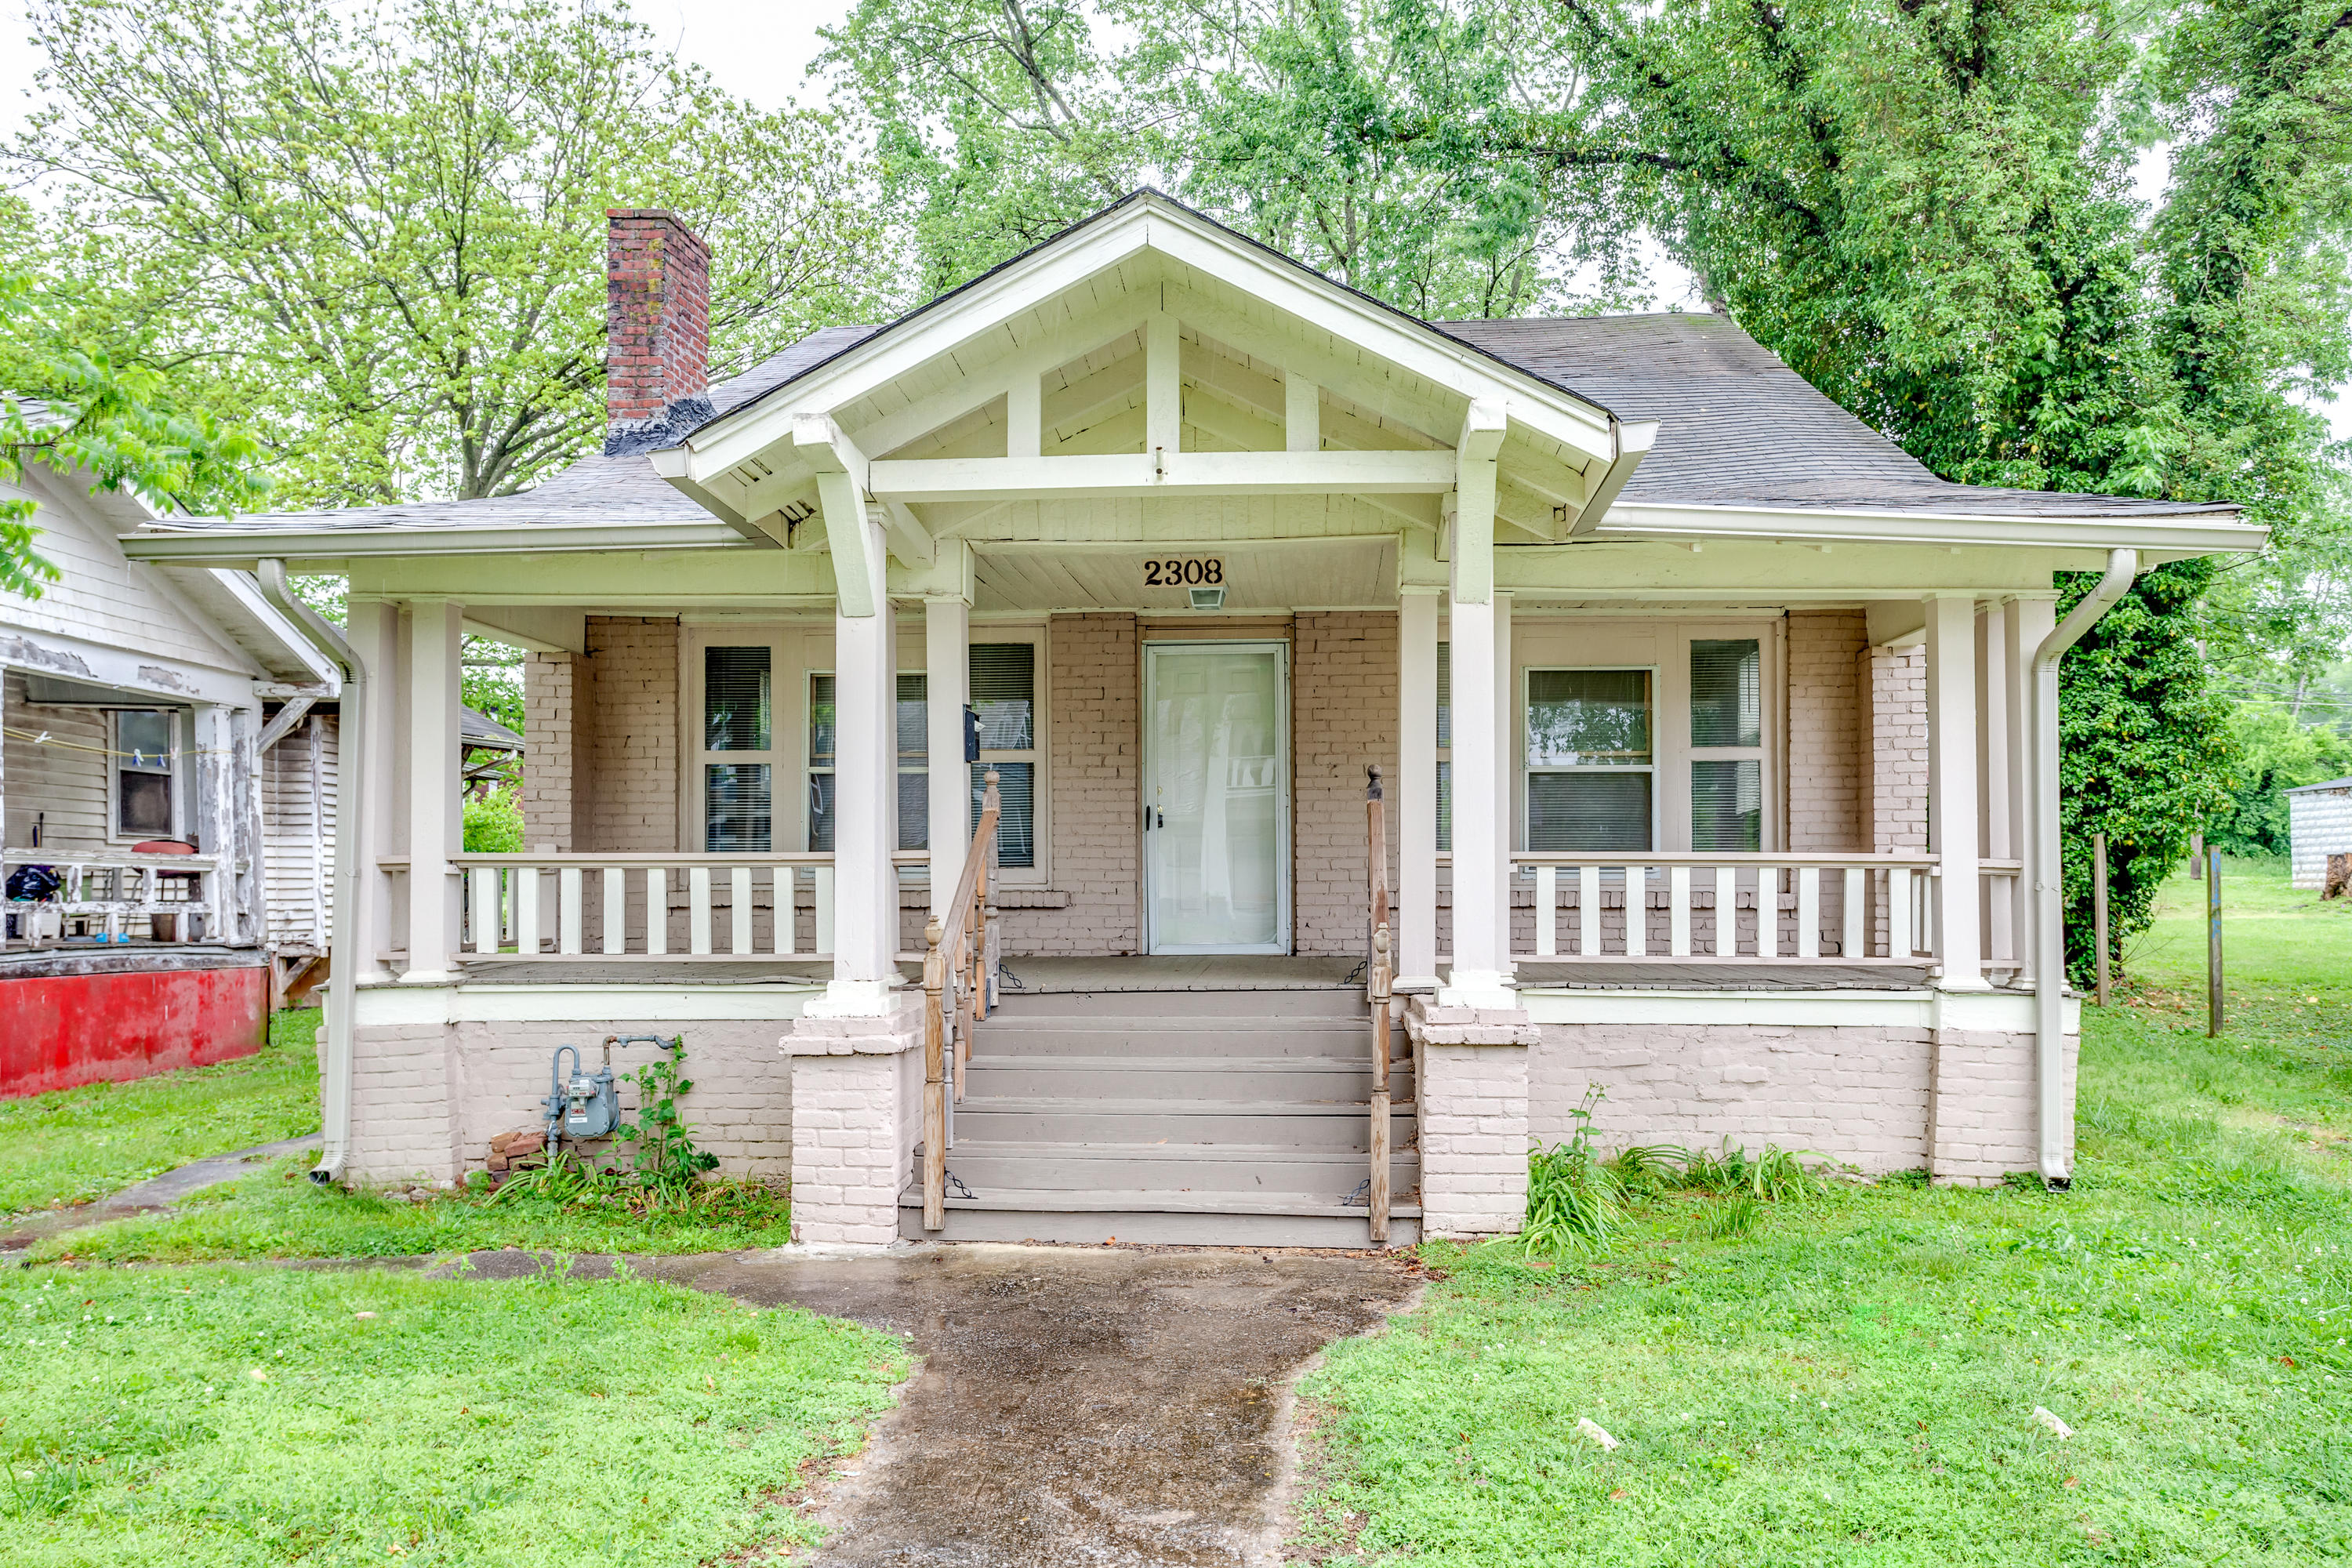 2308 5th Ave, Knoxville, Tennessee 37917, 3 Bedrooms Bedrooms, ,3 BathroomsBathrooms,Single Family,For Sale,5th,1116358